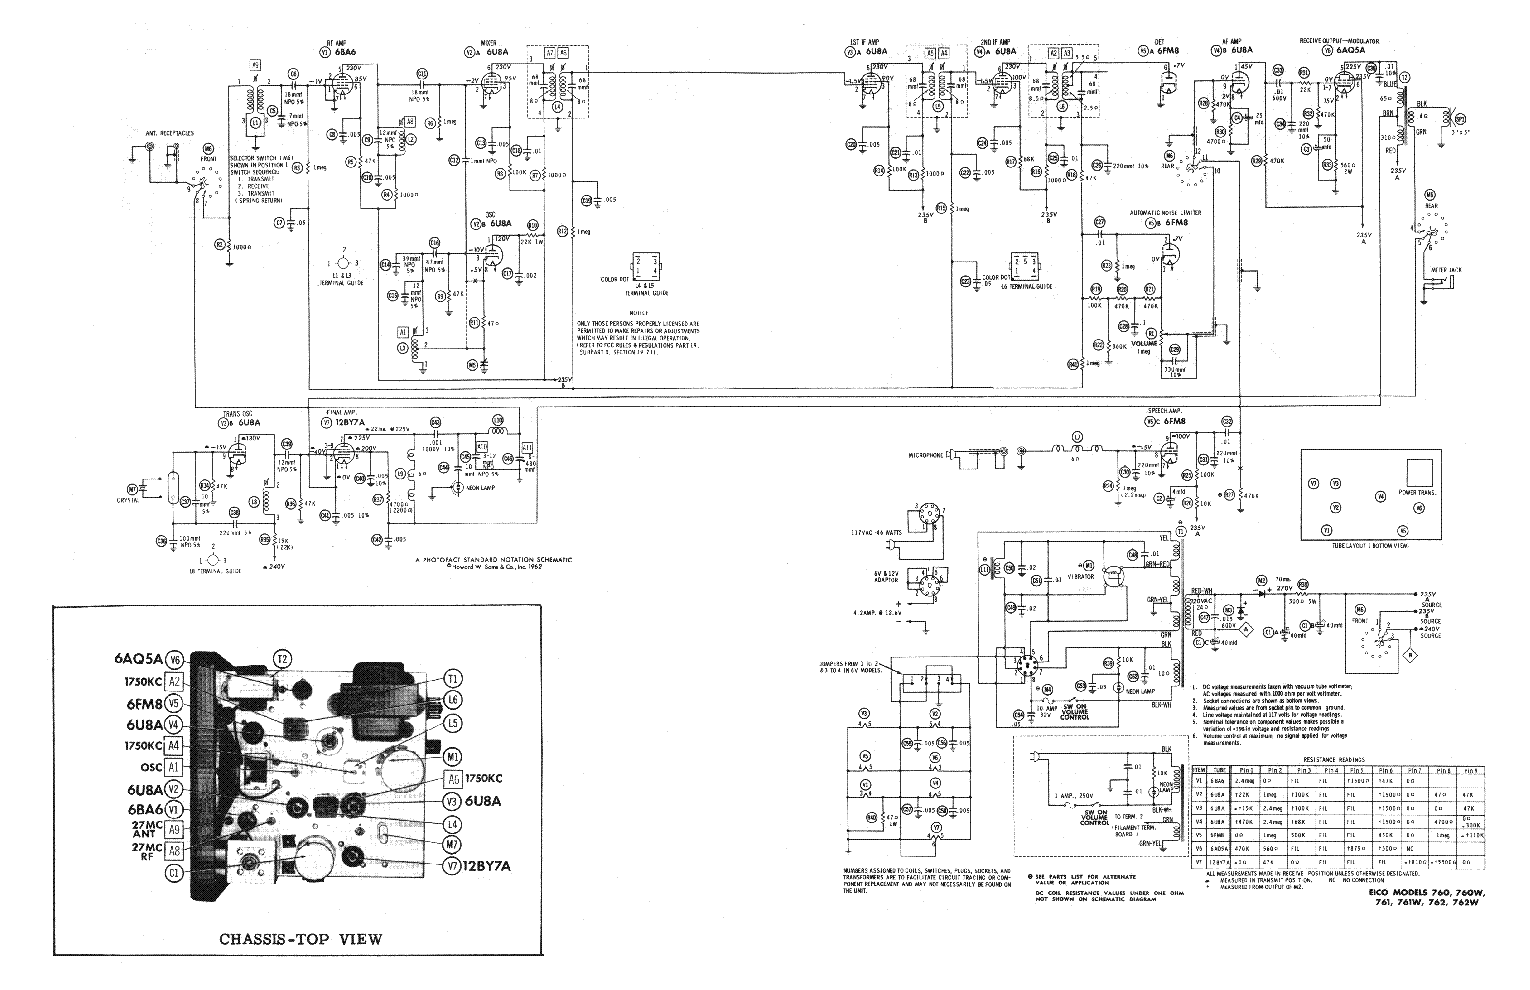 EICO 760 SCH Service Manual download, schematics, eeprom